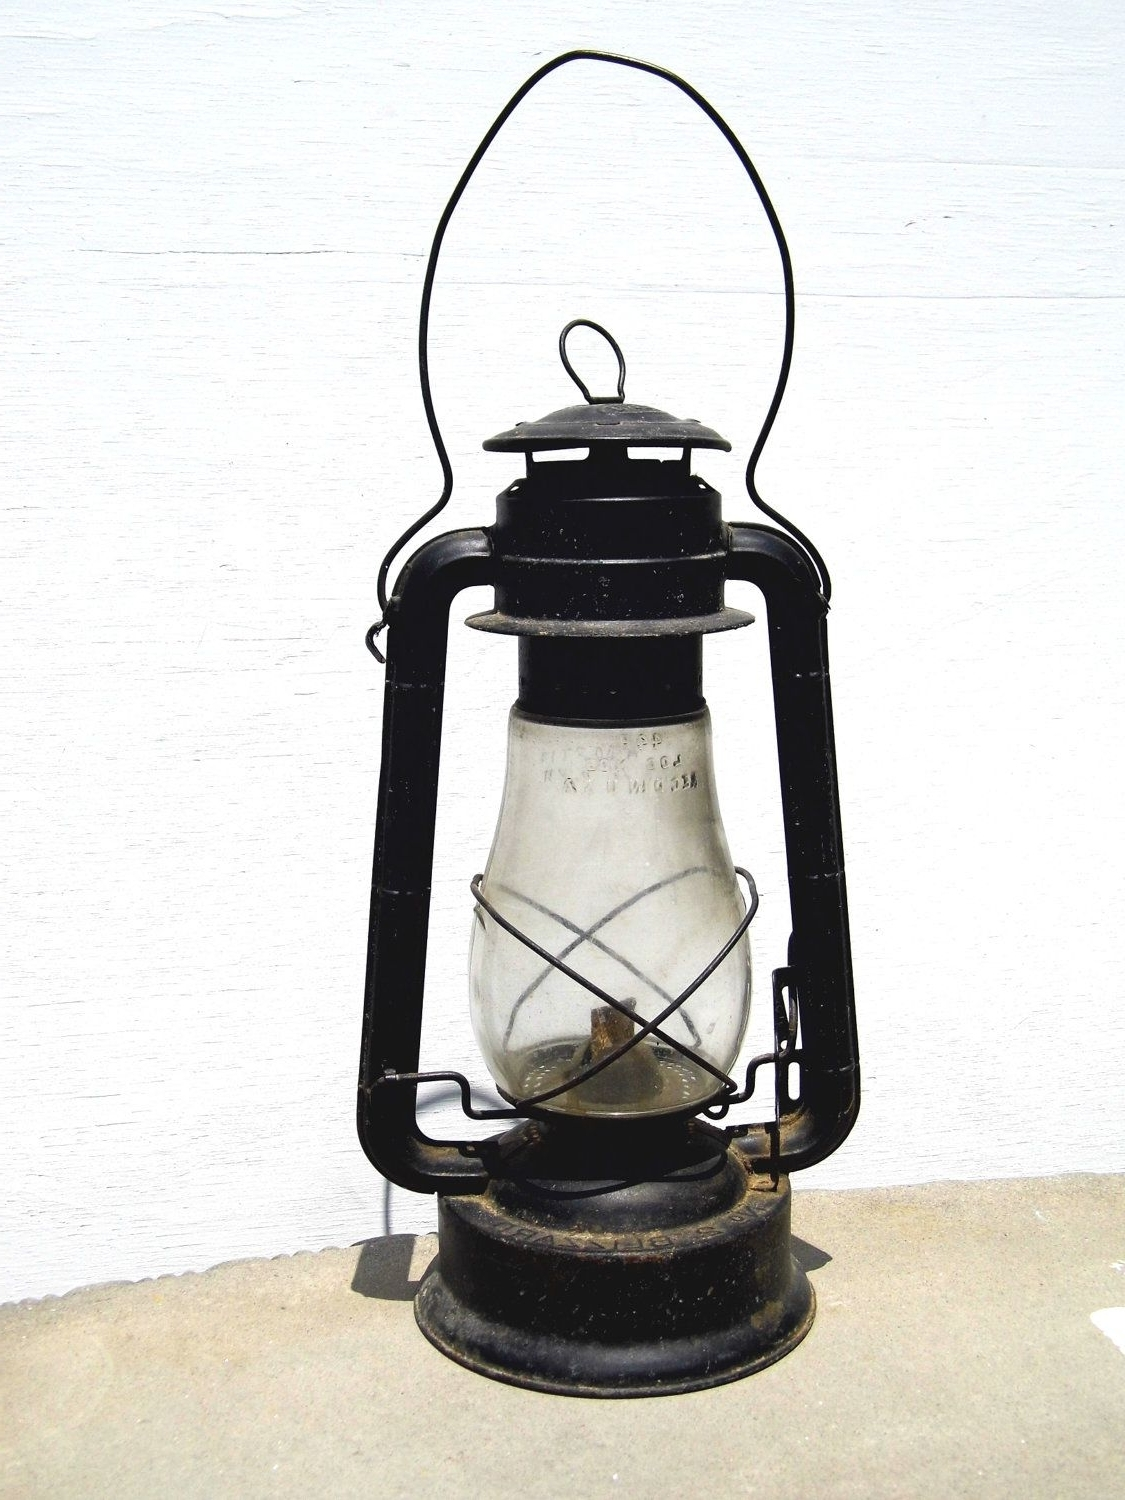 Dietz Lantern, Vintage Lantern, Railroad Lantern, Antique Lantern Within Best And Newest Outdoor Railroad Lanterns (View 3 of 20)